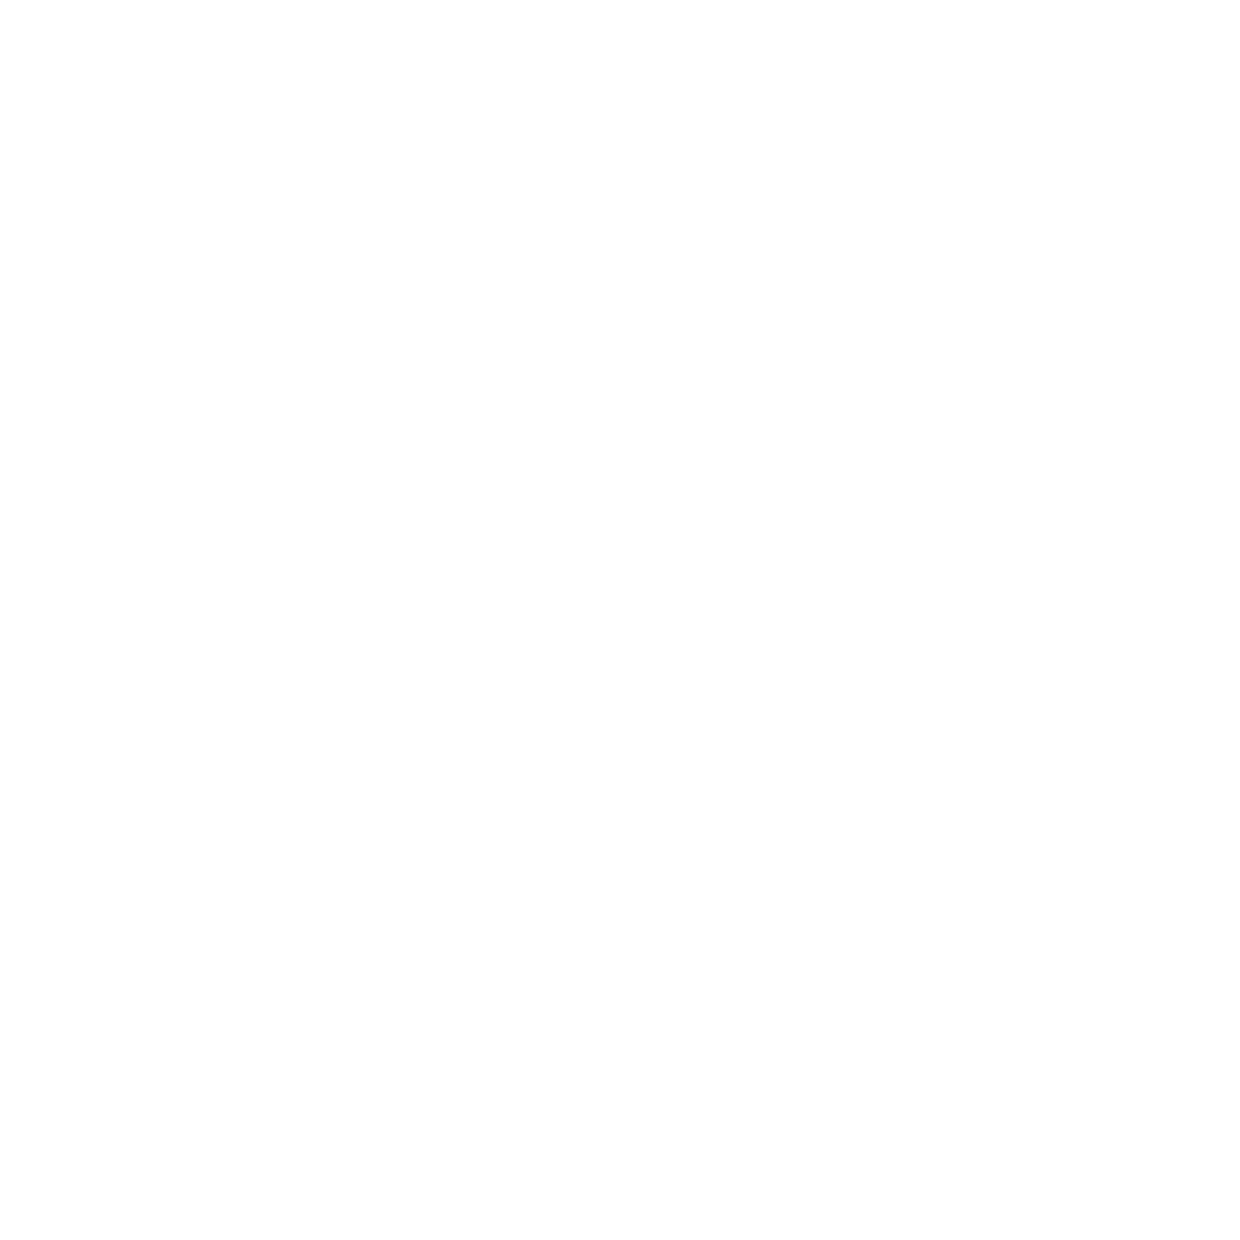 Focus on Fibre | nüber food limited